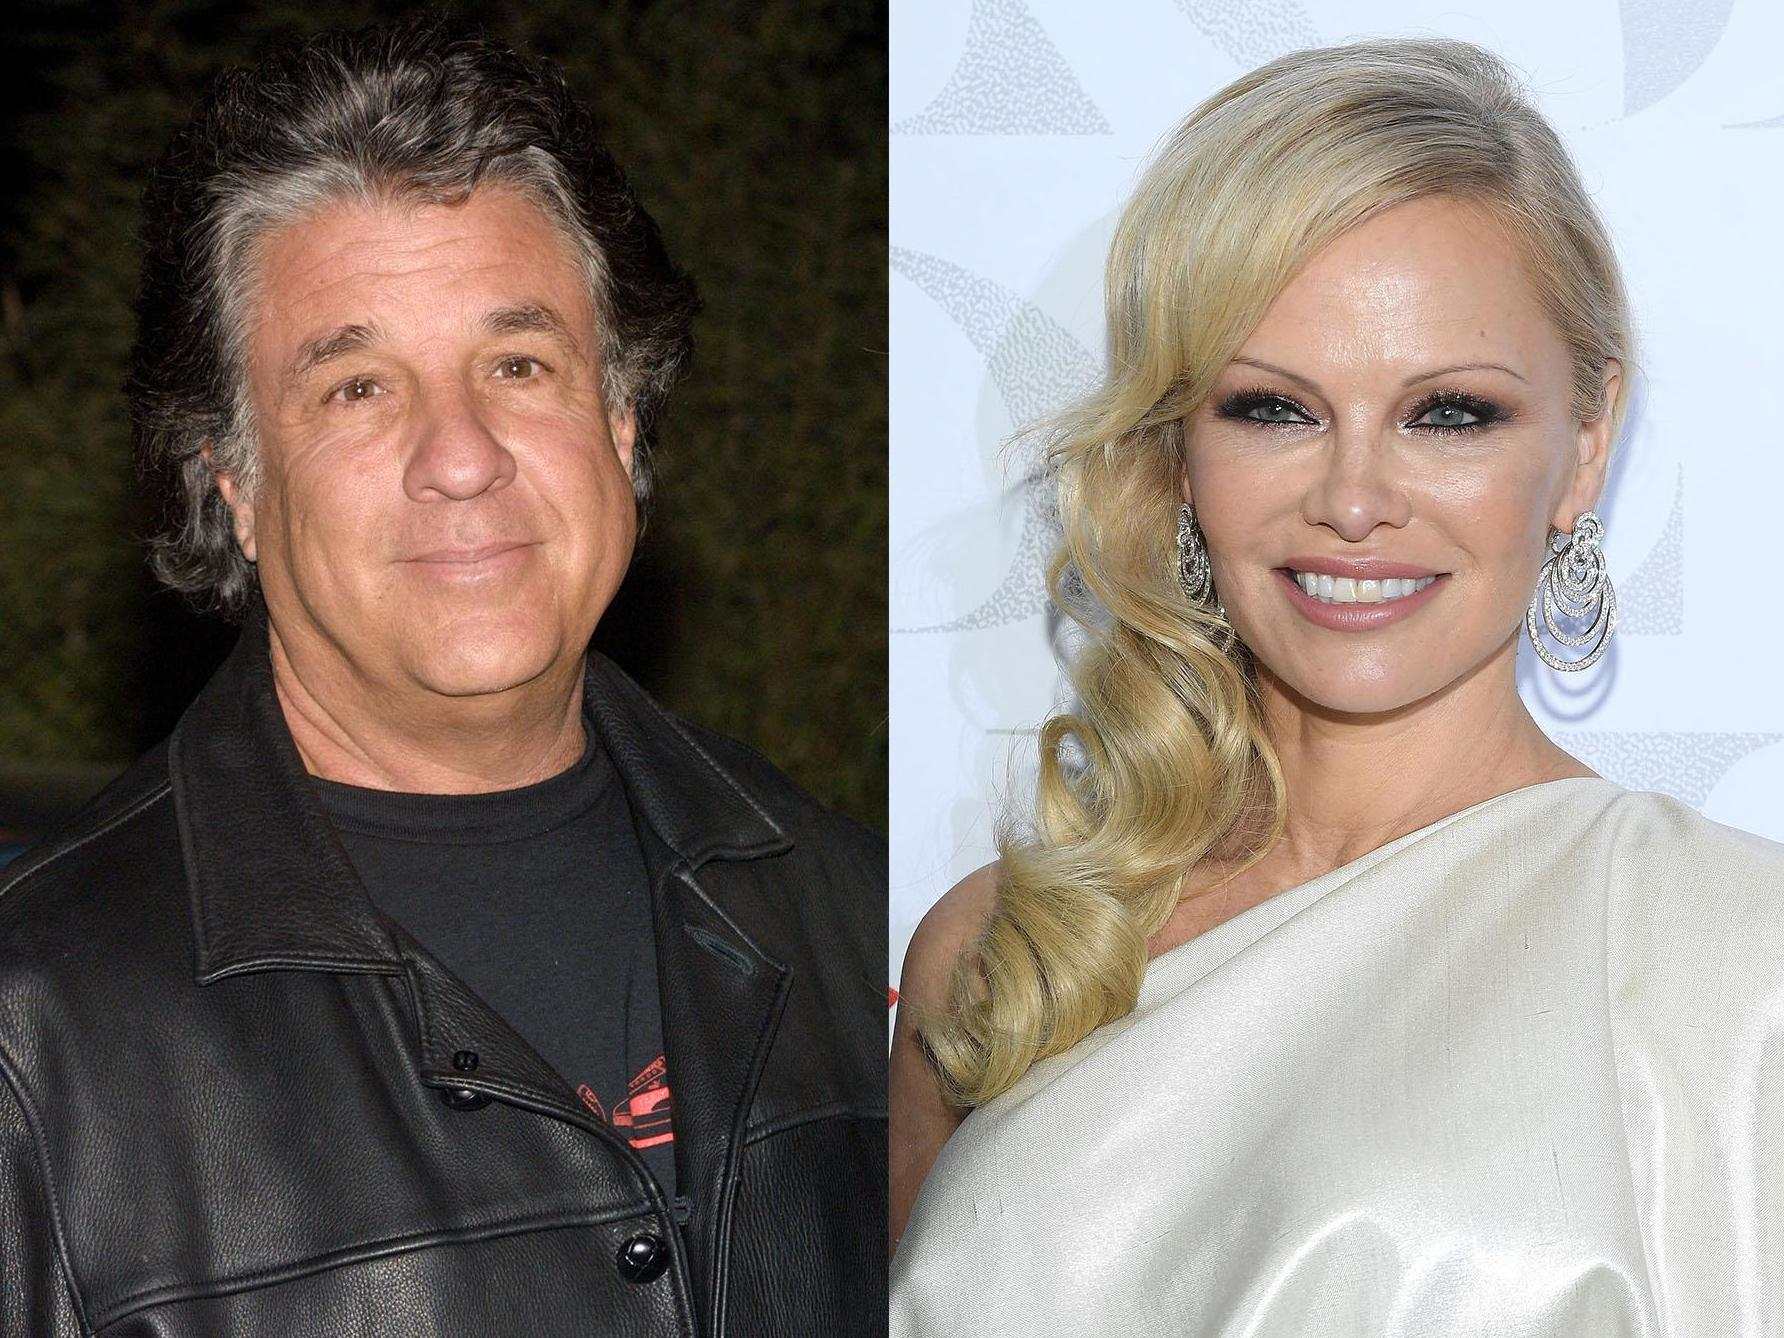 Andersen Porn Actress Swedish pamela anderson - latest news, breaking stories and comment